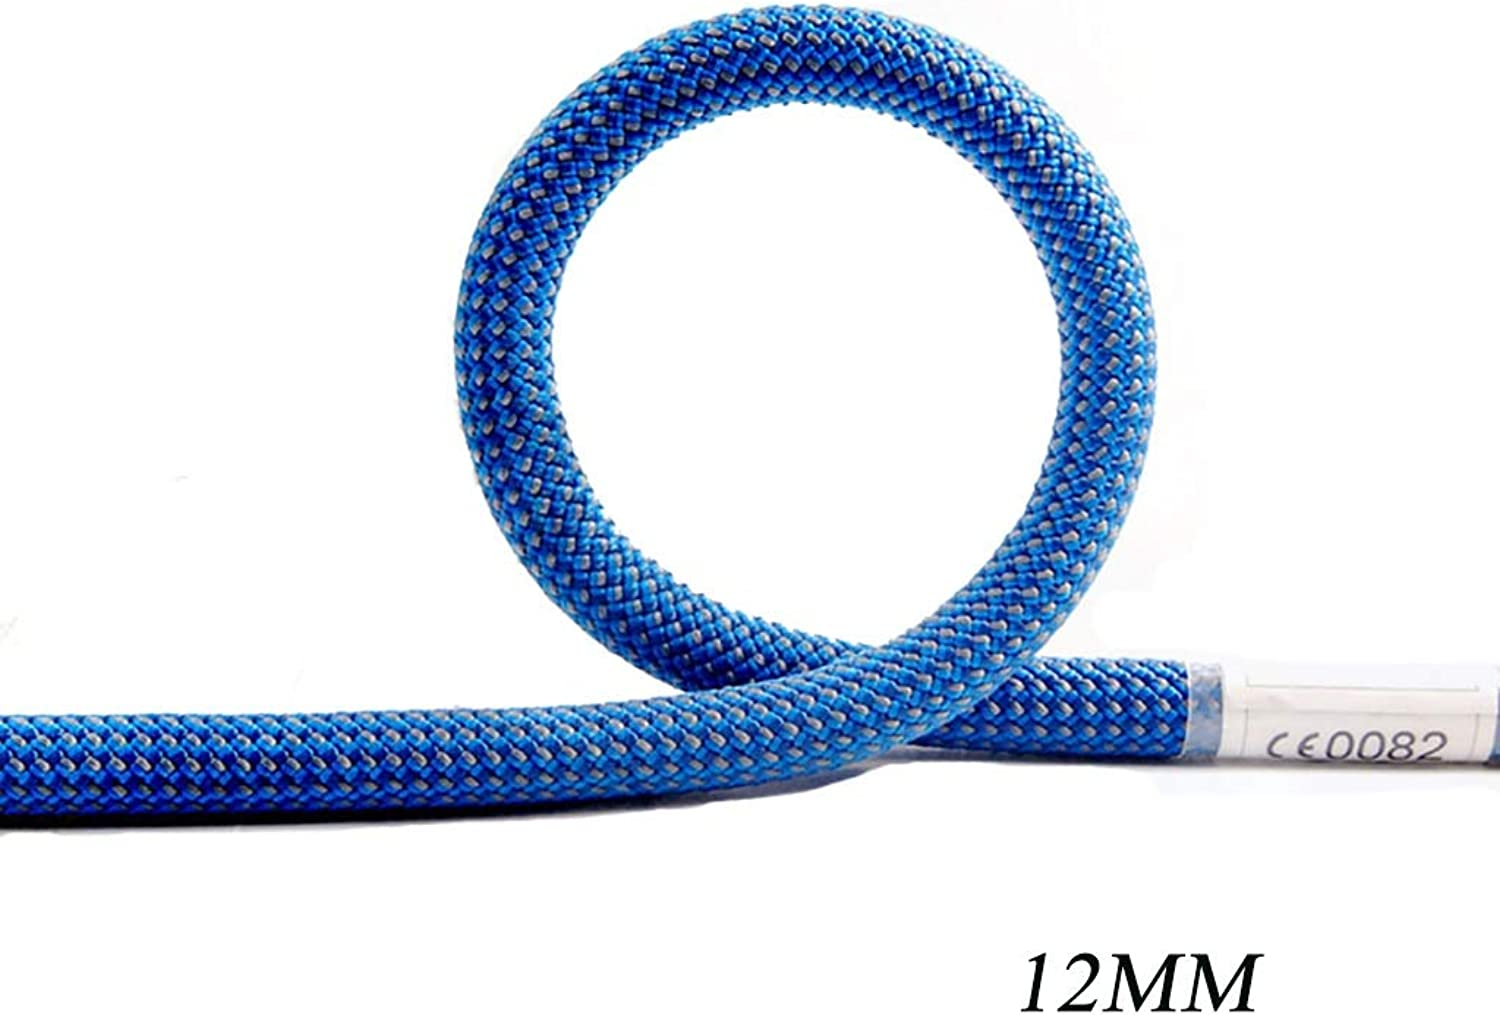 Static Ropes Outdoor Mountaineering Rappelling Rope Nylon wearResistant Climbing Safety Rope Φ12MM (0.47mm) bluee